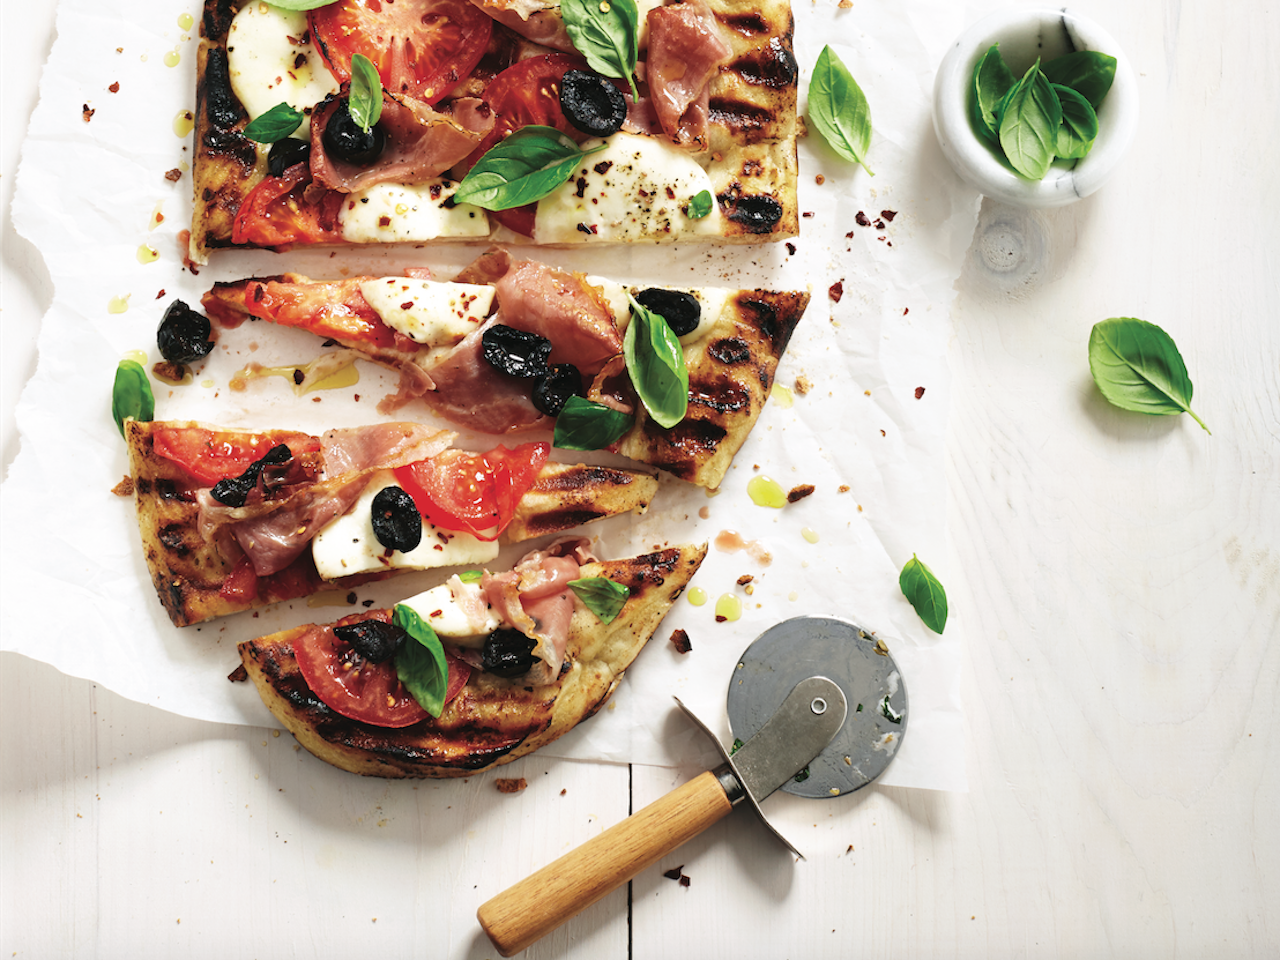 Grilled pizza recipe: Partly sliced grilled pizza on a wooden cutting board, topped with cheese, basil and prosciutto.